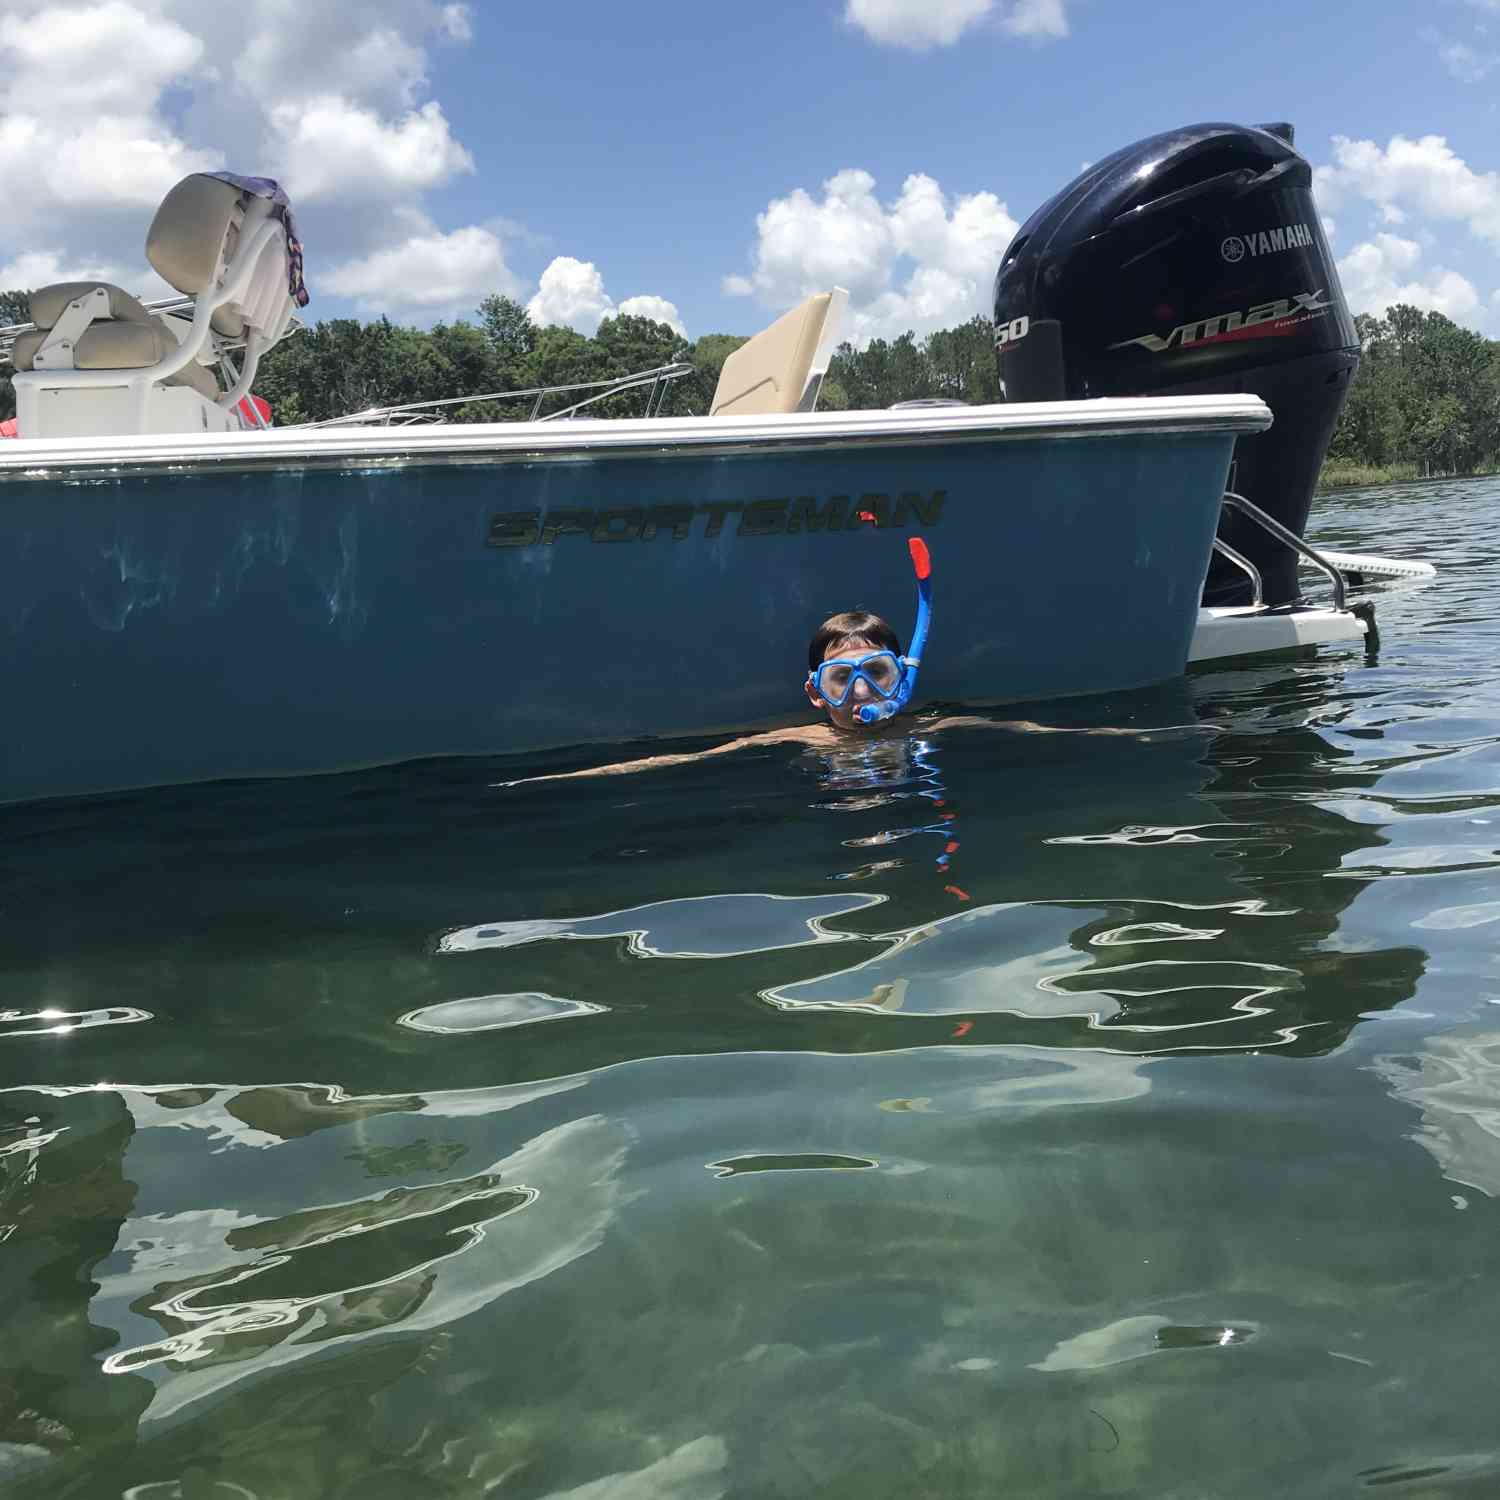 Title: Snorkeling fun - On board their Sportsman Masters 247 Bay Boat - Location: Salt springs, Fl. Participating in the Photo Contest #SportsmanJuly2018